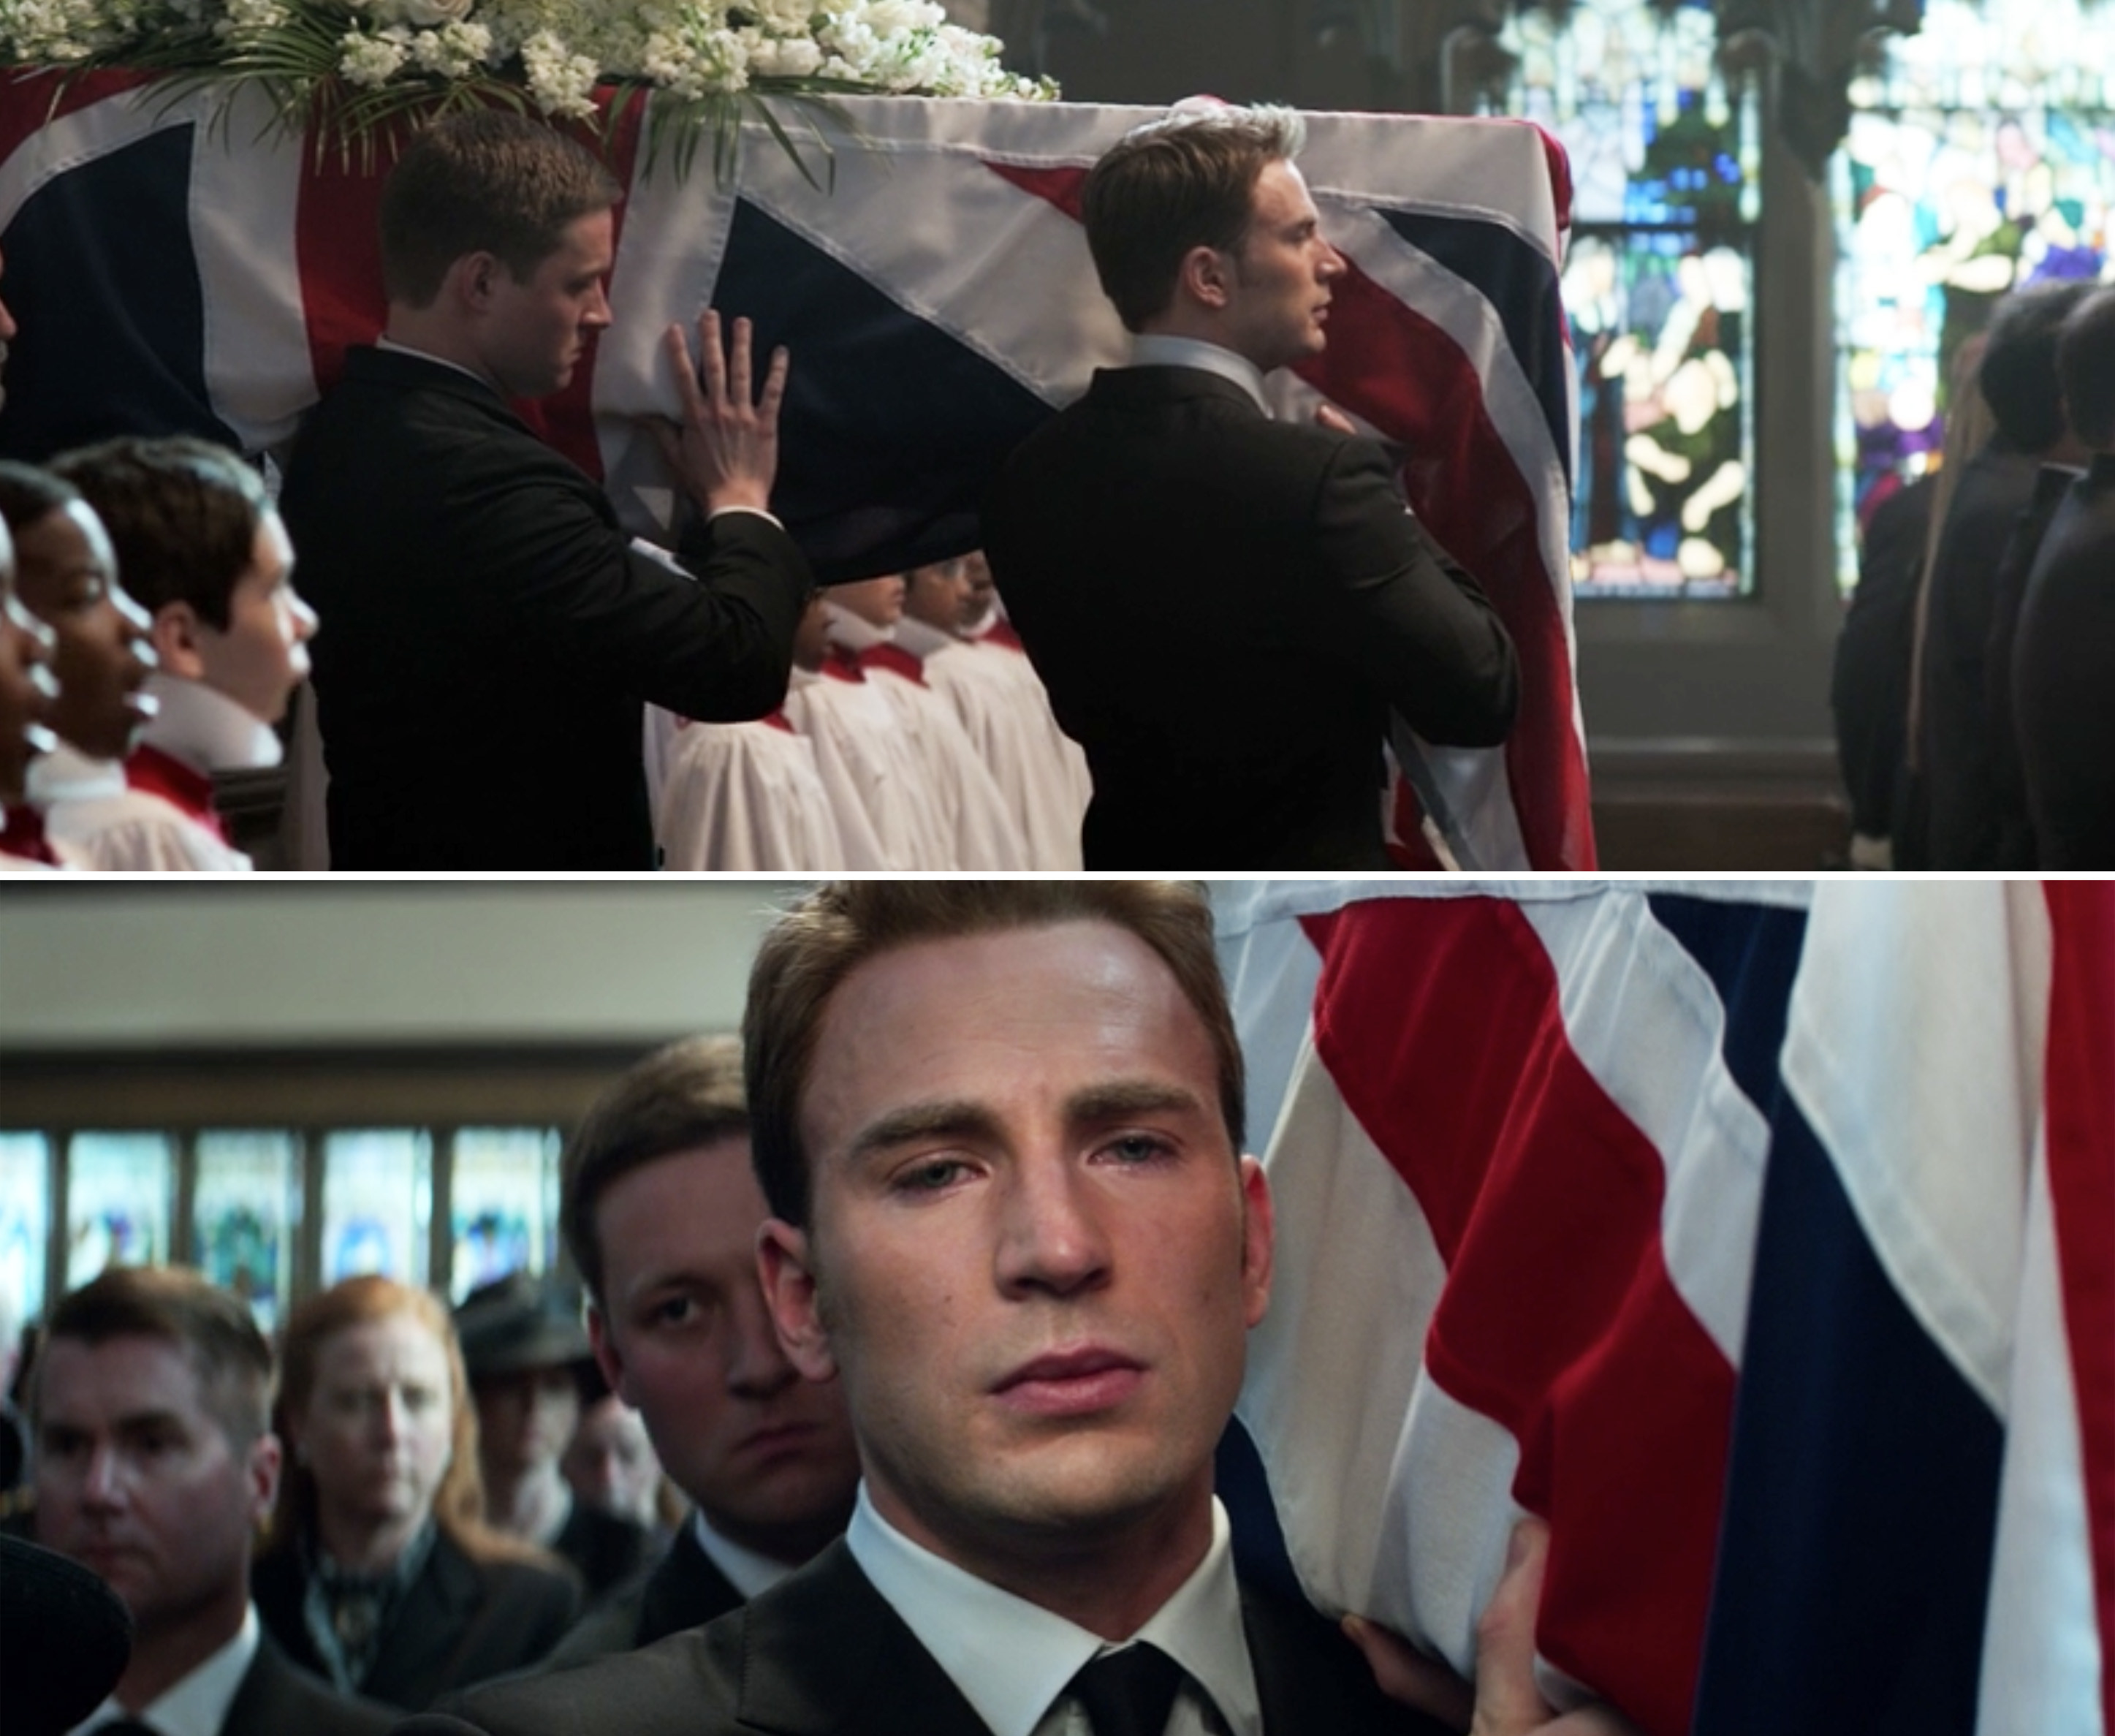 Steve crying while carrying Peggy's casket